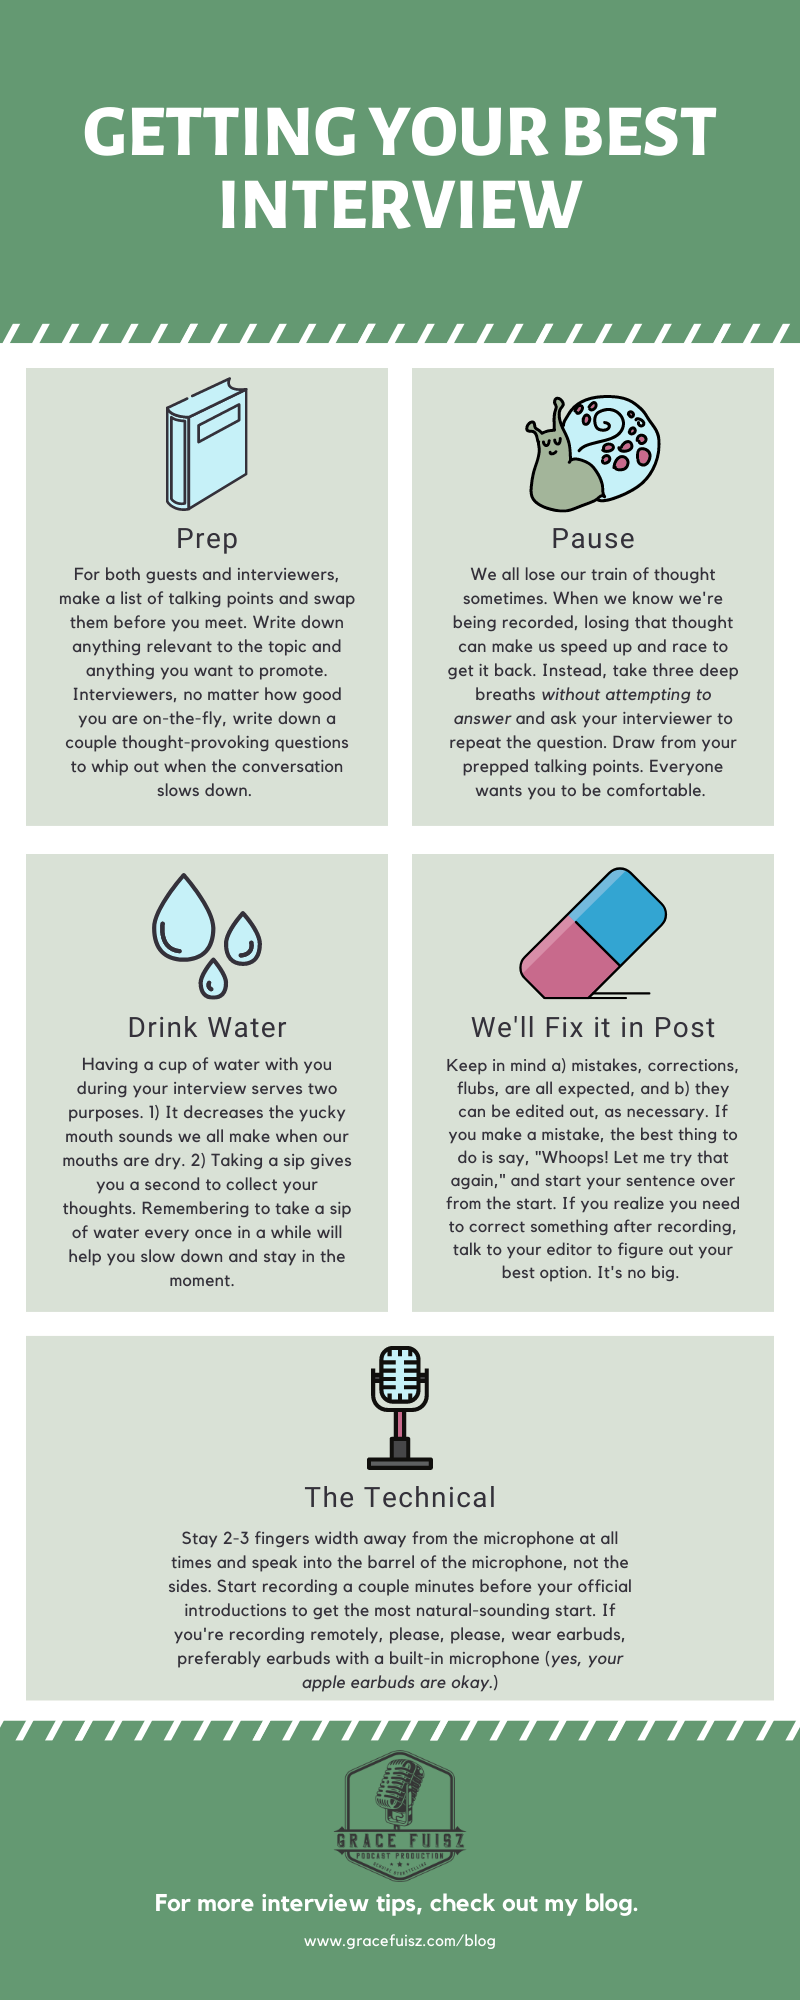 A green and blue infographic detailing 5 tips for getting the best podcast interview - how to prep properly (write down talking points), slow down when you lose your train of thought, drink water, remember corrections can be edited in post, and tips for microphone placement.